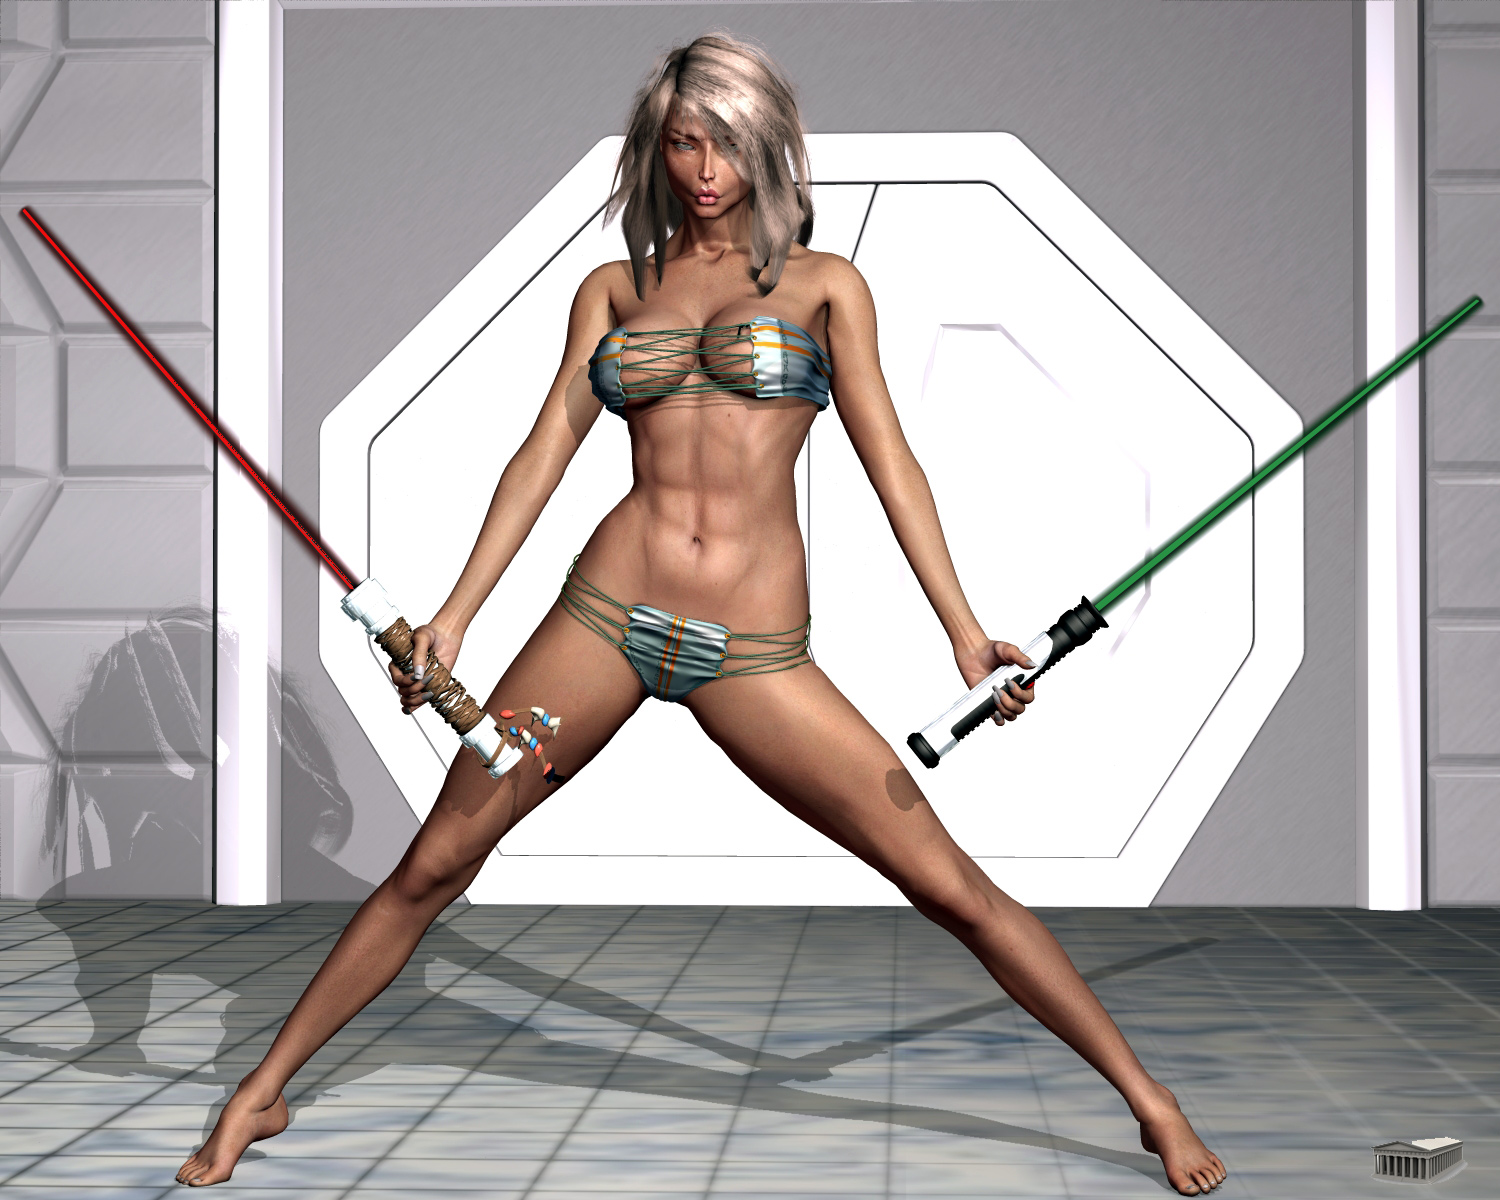 Hot female star wars cartoon images erotic clip